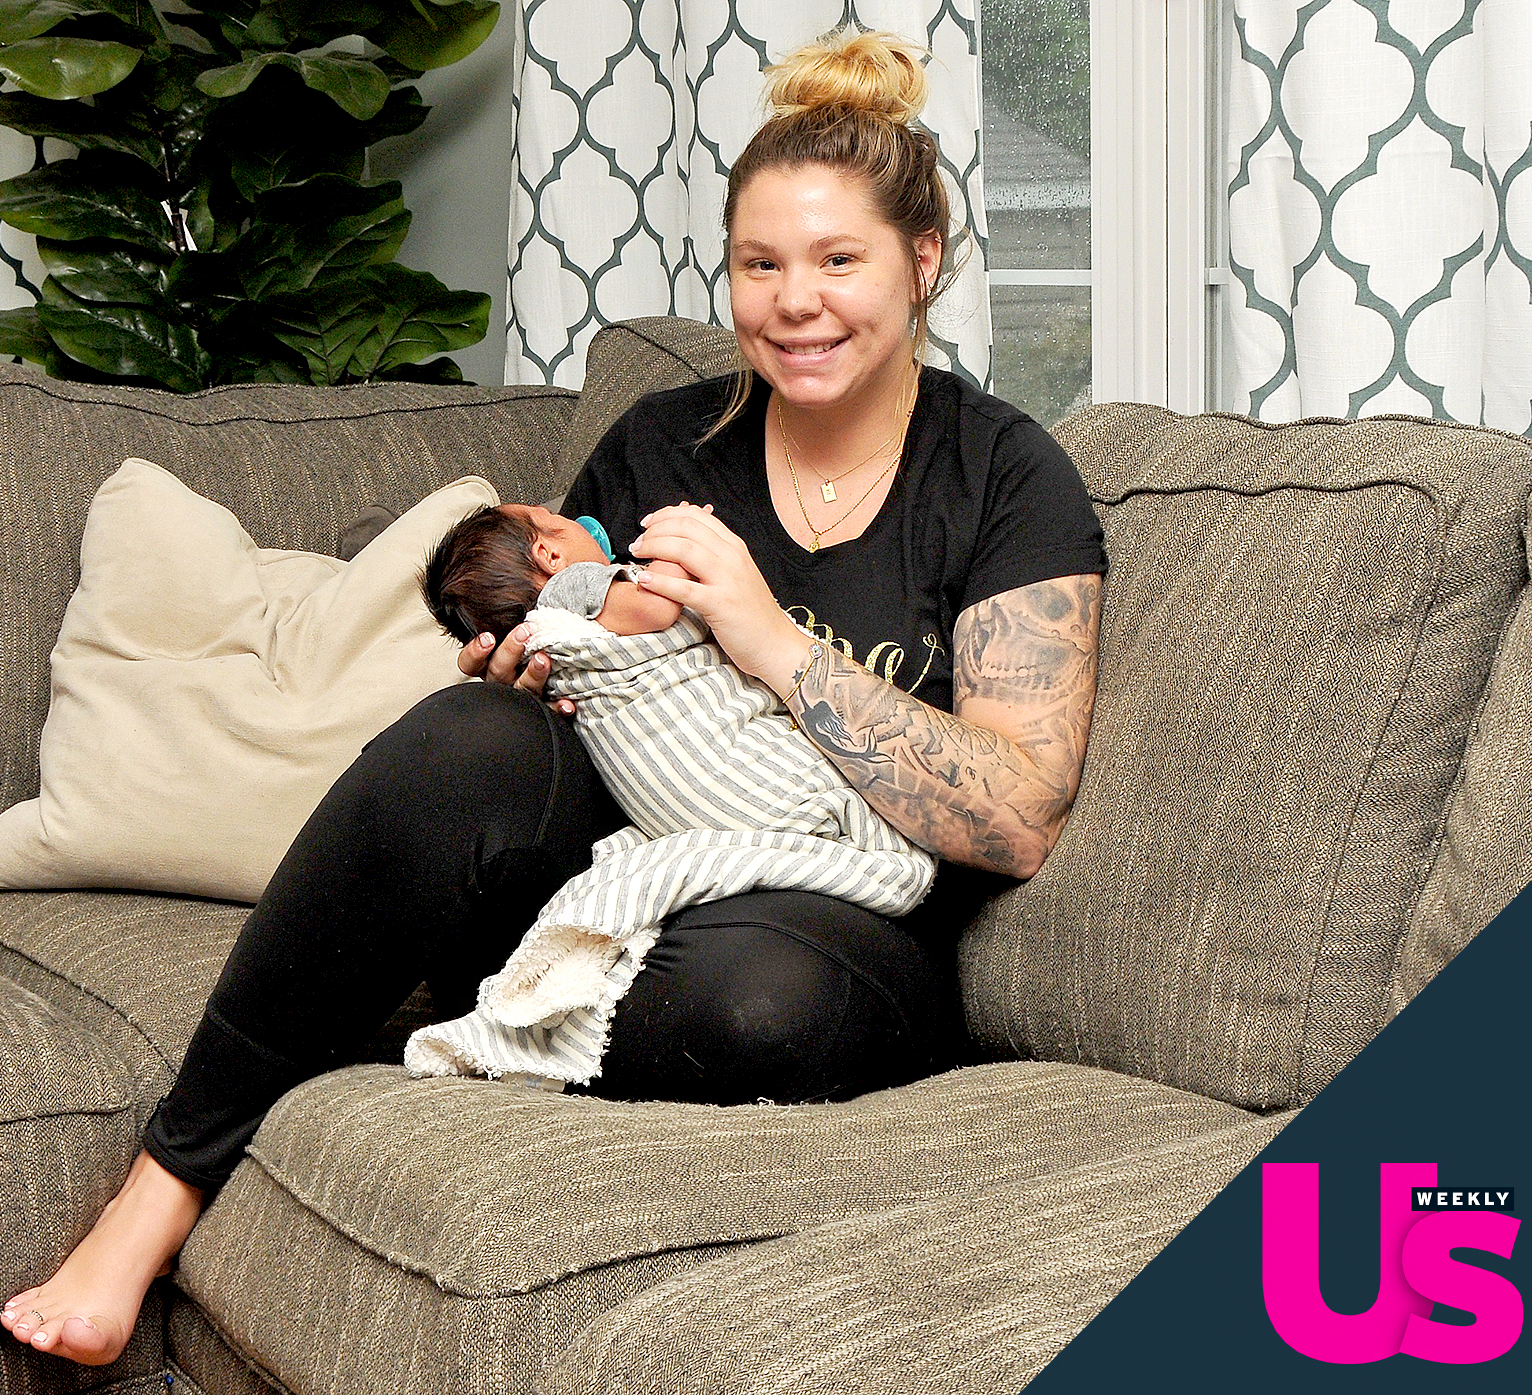 Kailyn Lowry and her baby boy